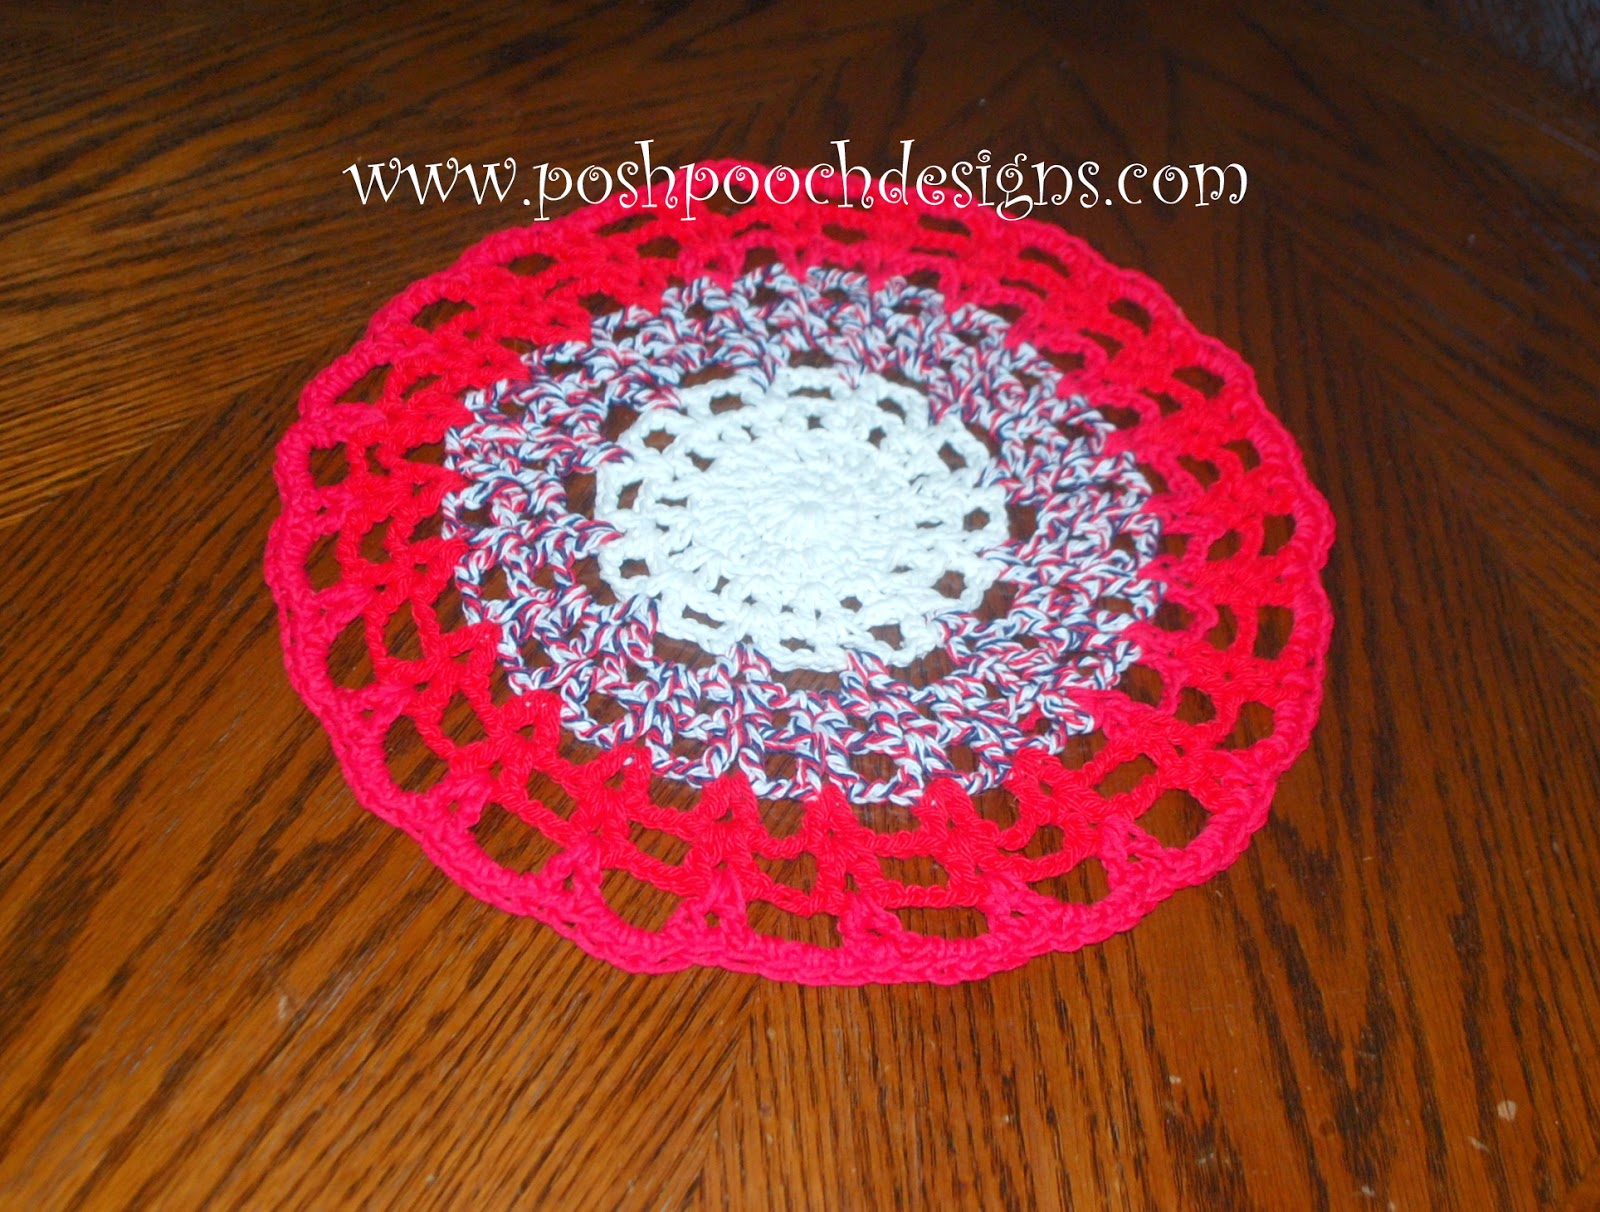 Posh pooch designs dog clothes round cotton placemat free crochet pattern bankloansurffo Image collections